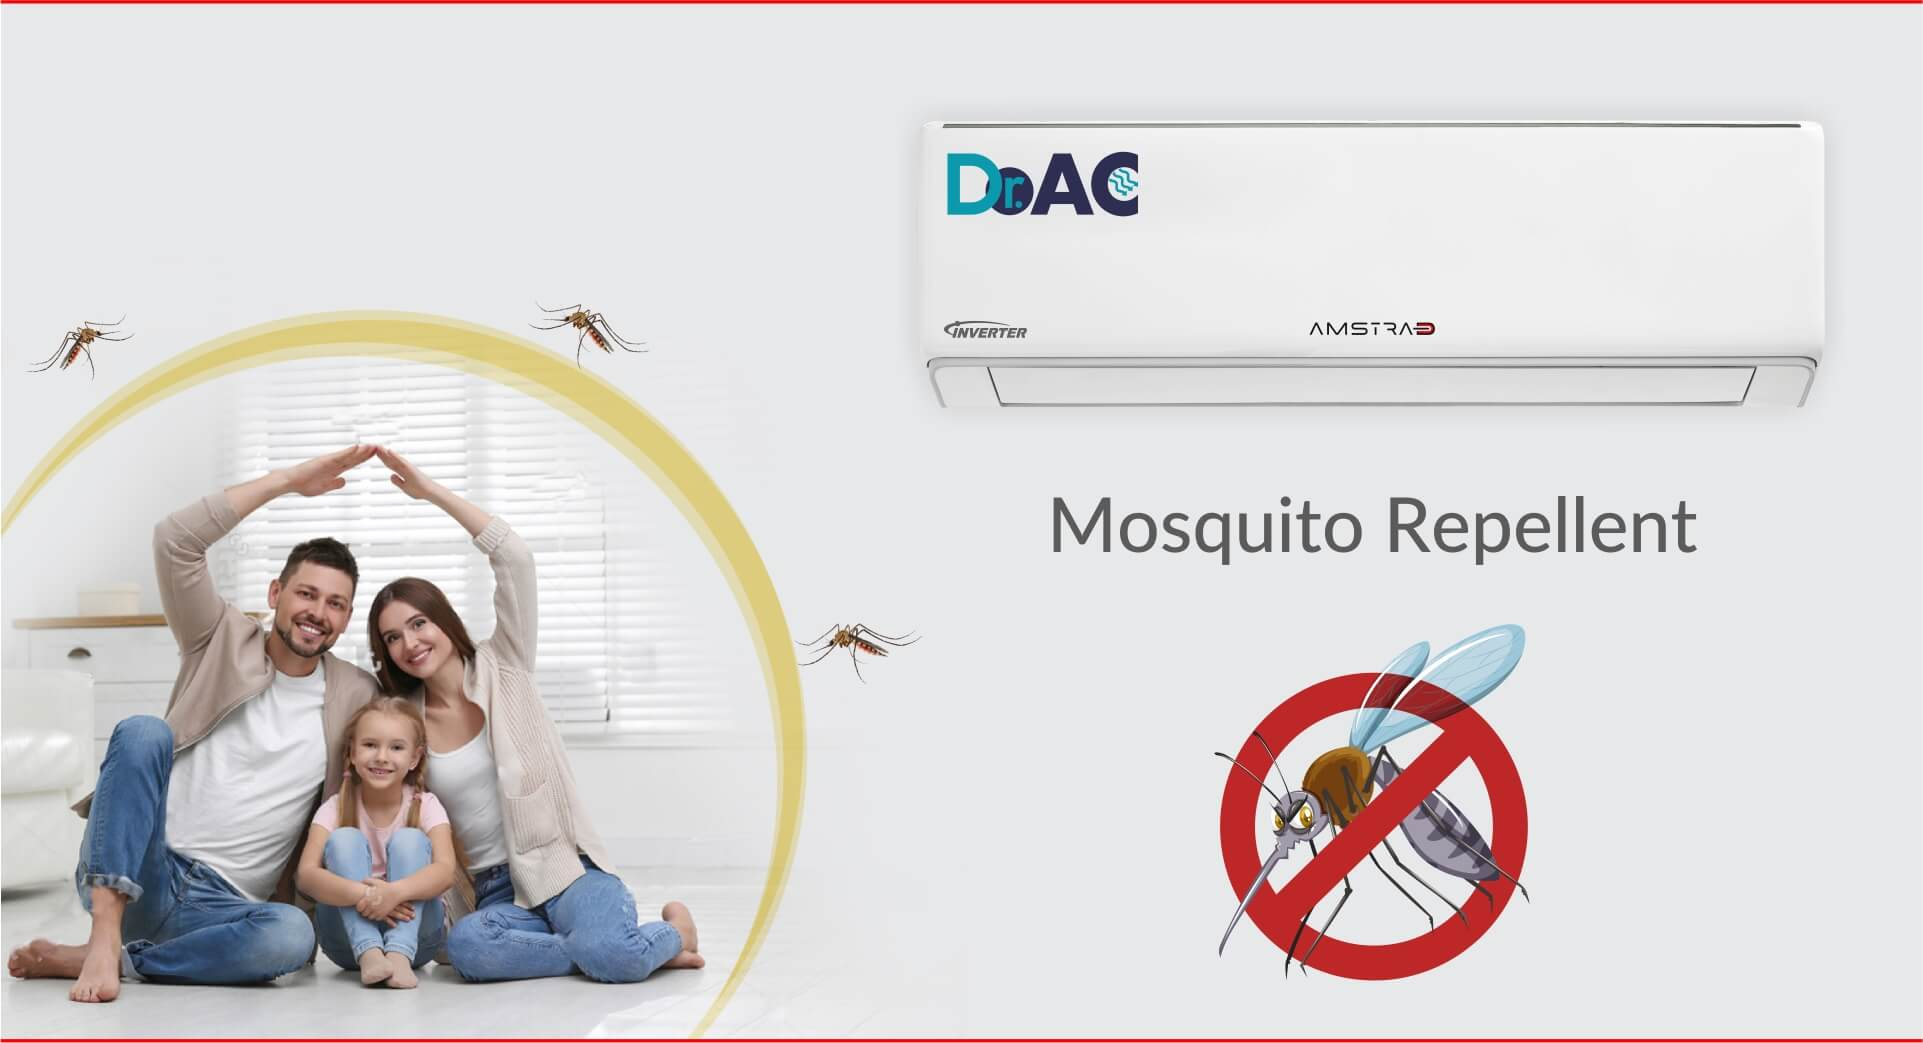 AMSTRAD-DR-AC-MOSQUITO-REPELLENT